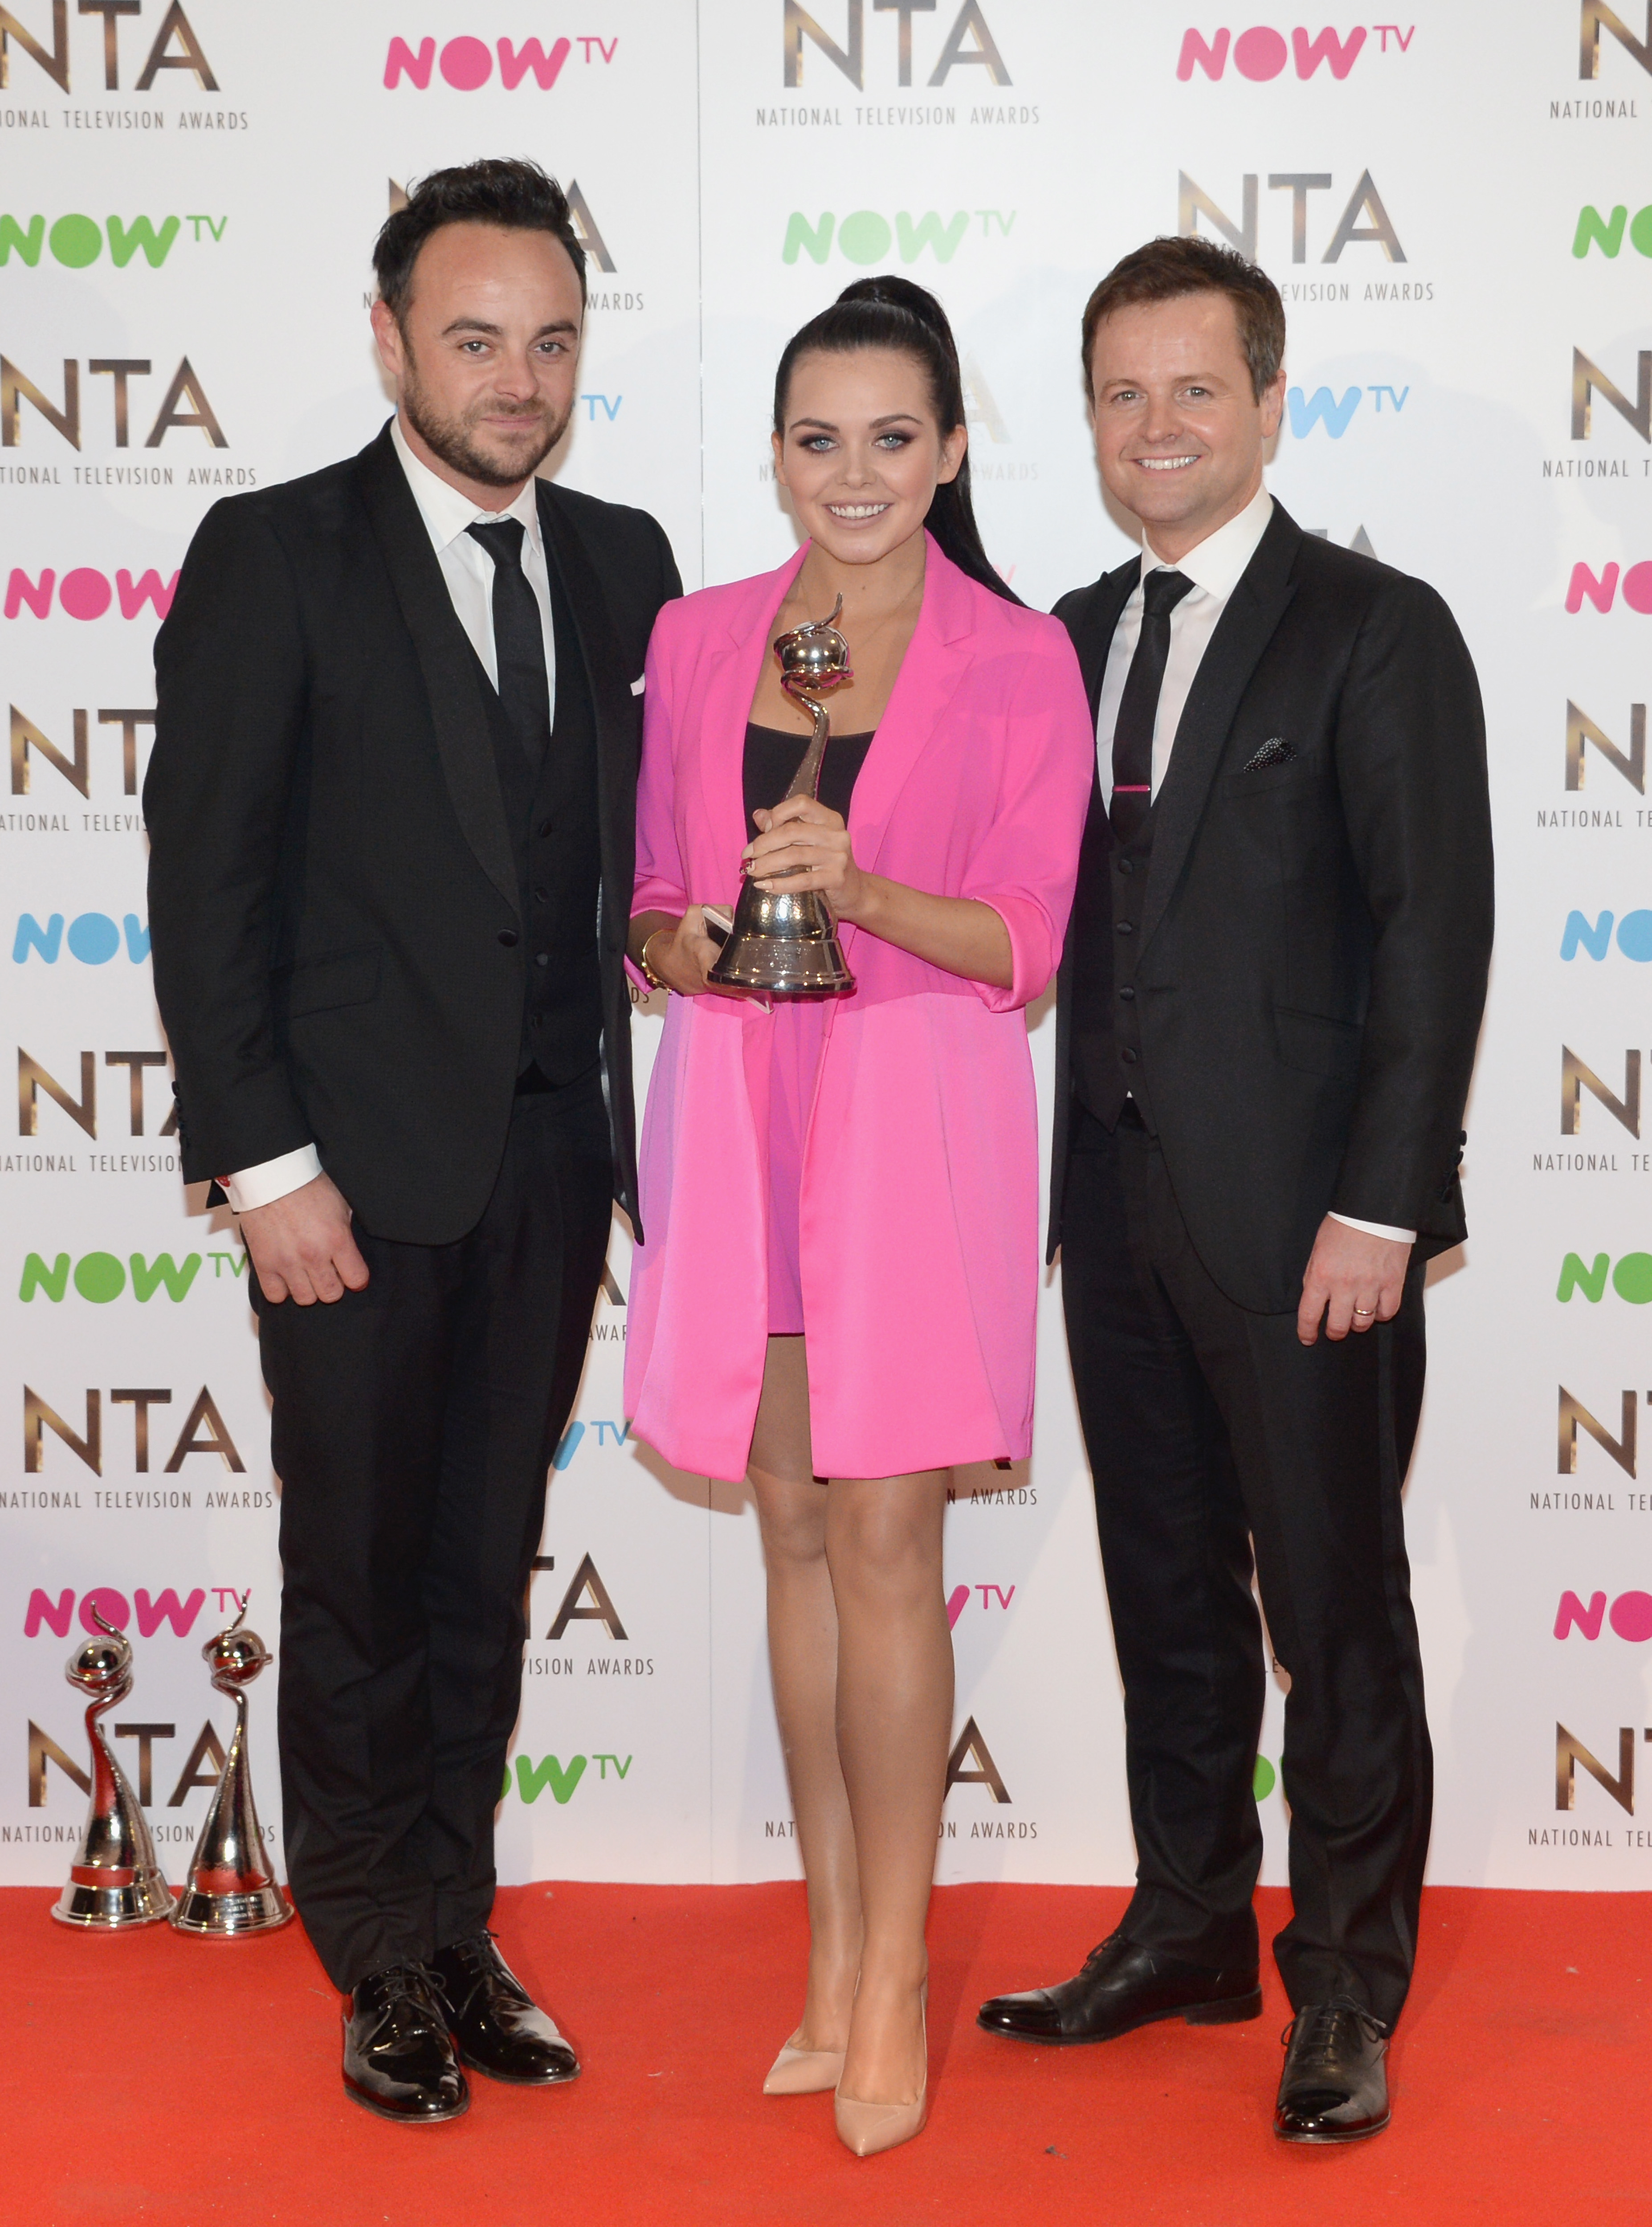 Anthony McPartlin, Declan Donnelly and Scarlett Moffatt with the Best Challenge Show award for I'm a Celebrity... Get Me Out of Here, on stage during the National Television Awards at The O2 Arena on January 25, 2017 in London, England.